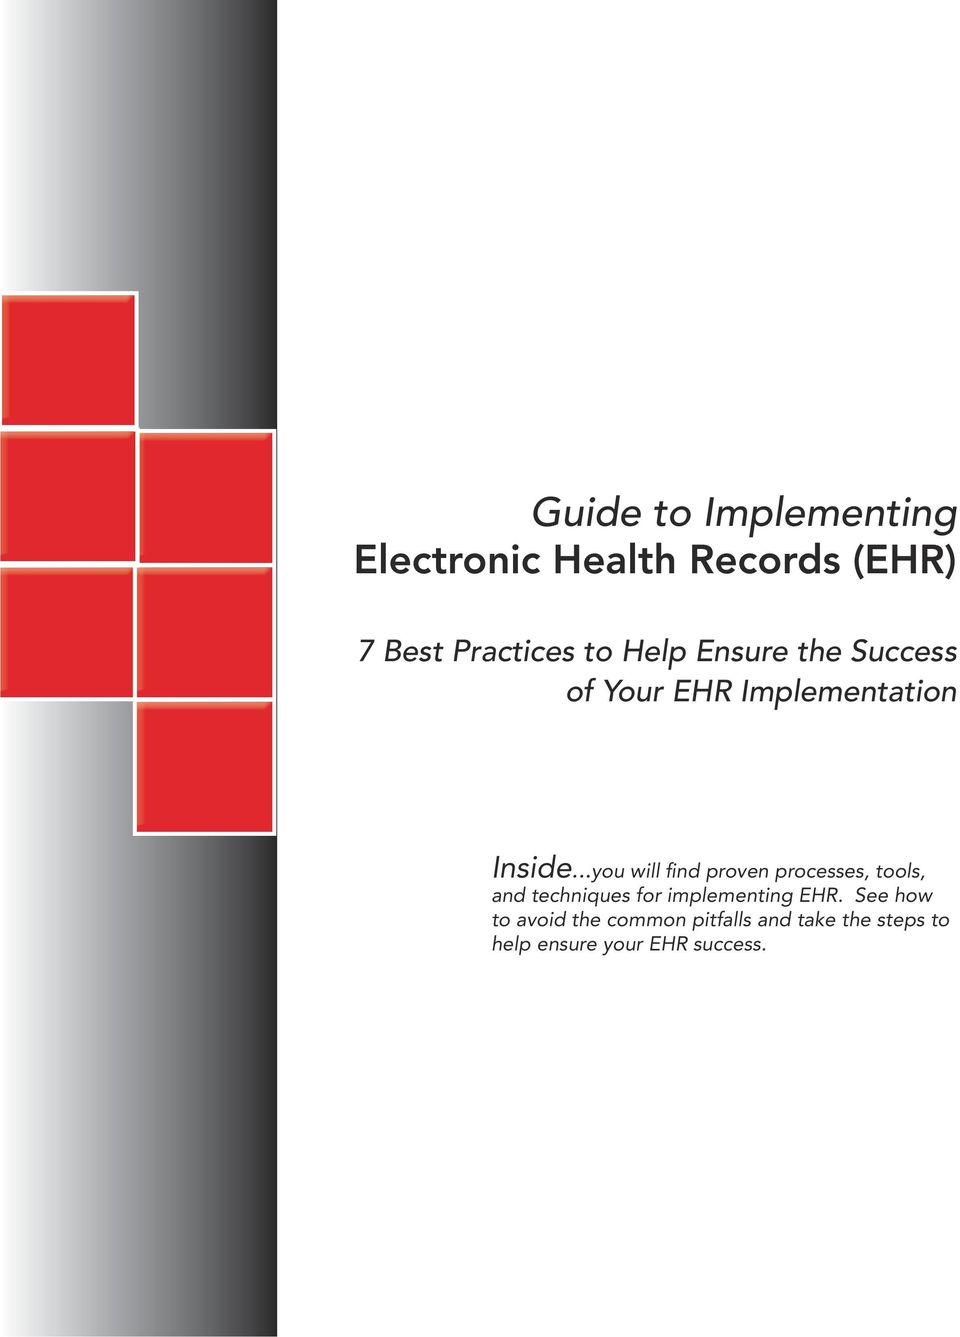 ..you will find proven processes, tools, and techniques for implementing EHR.